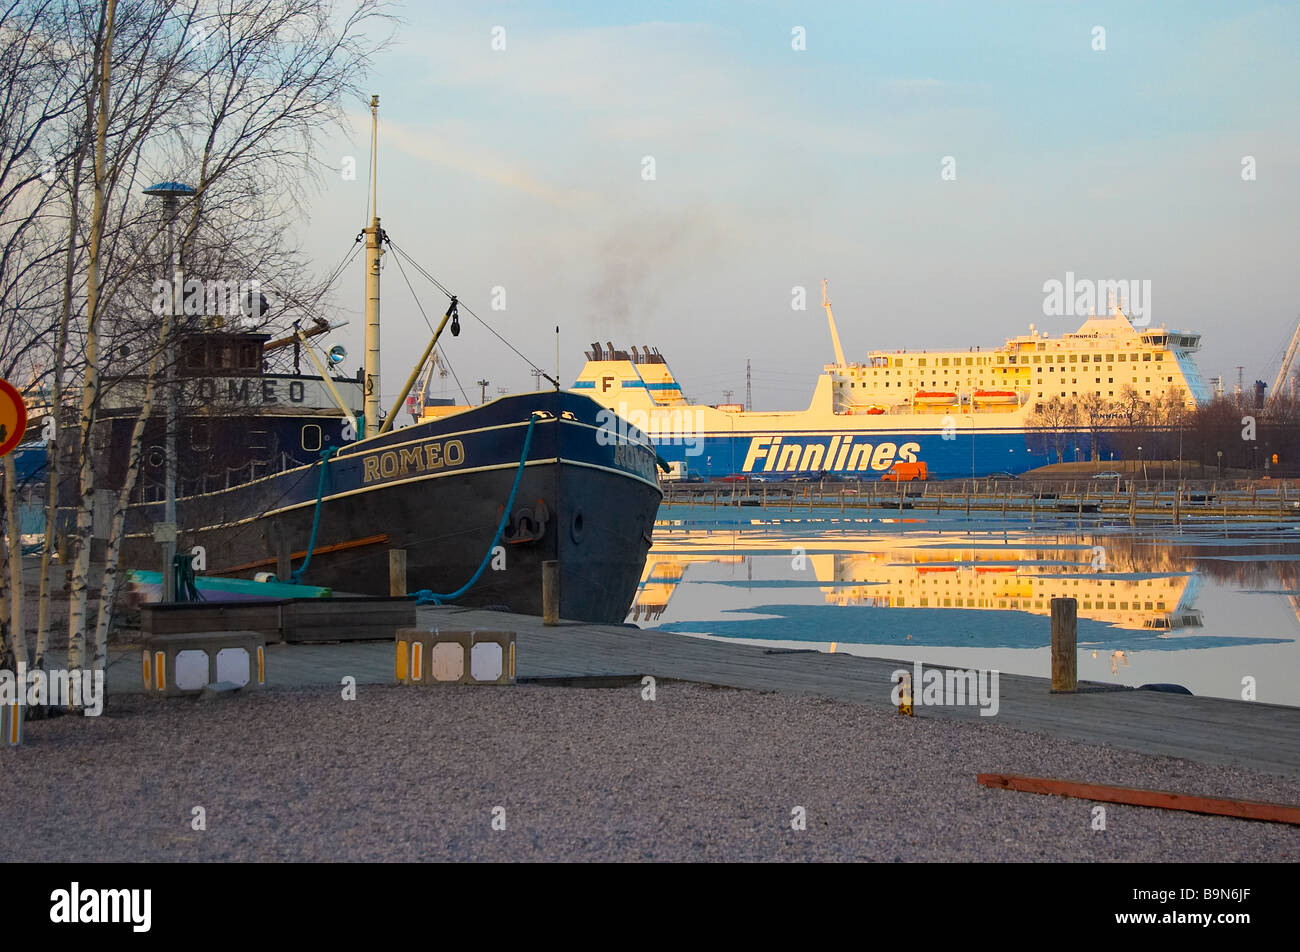 A view to a boat and ferry at Helsinki bay, Finland. - Stock Image